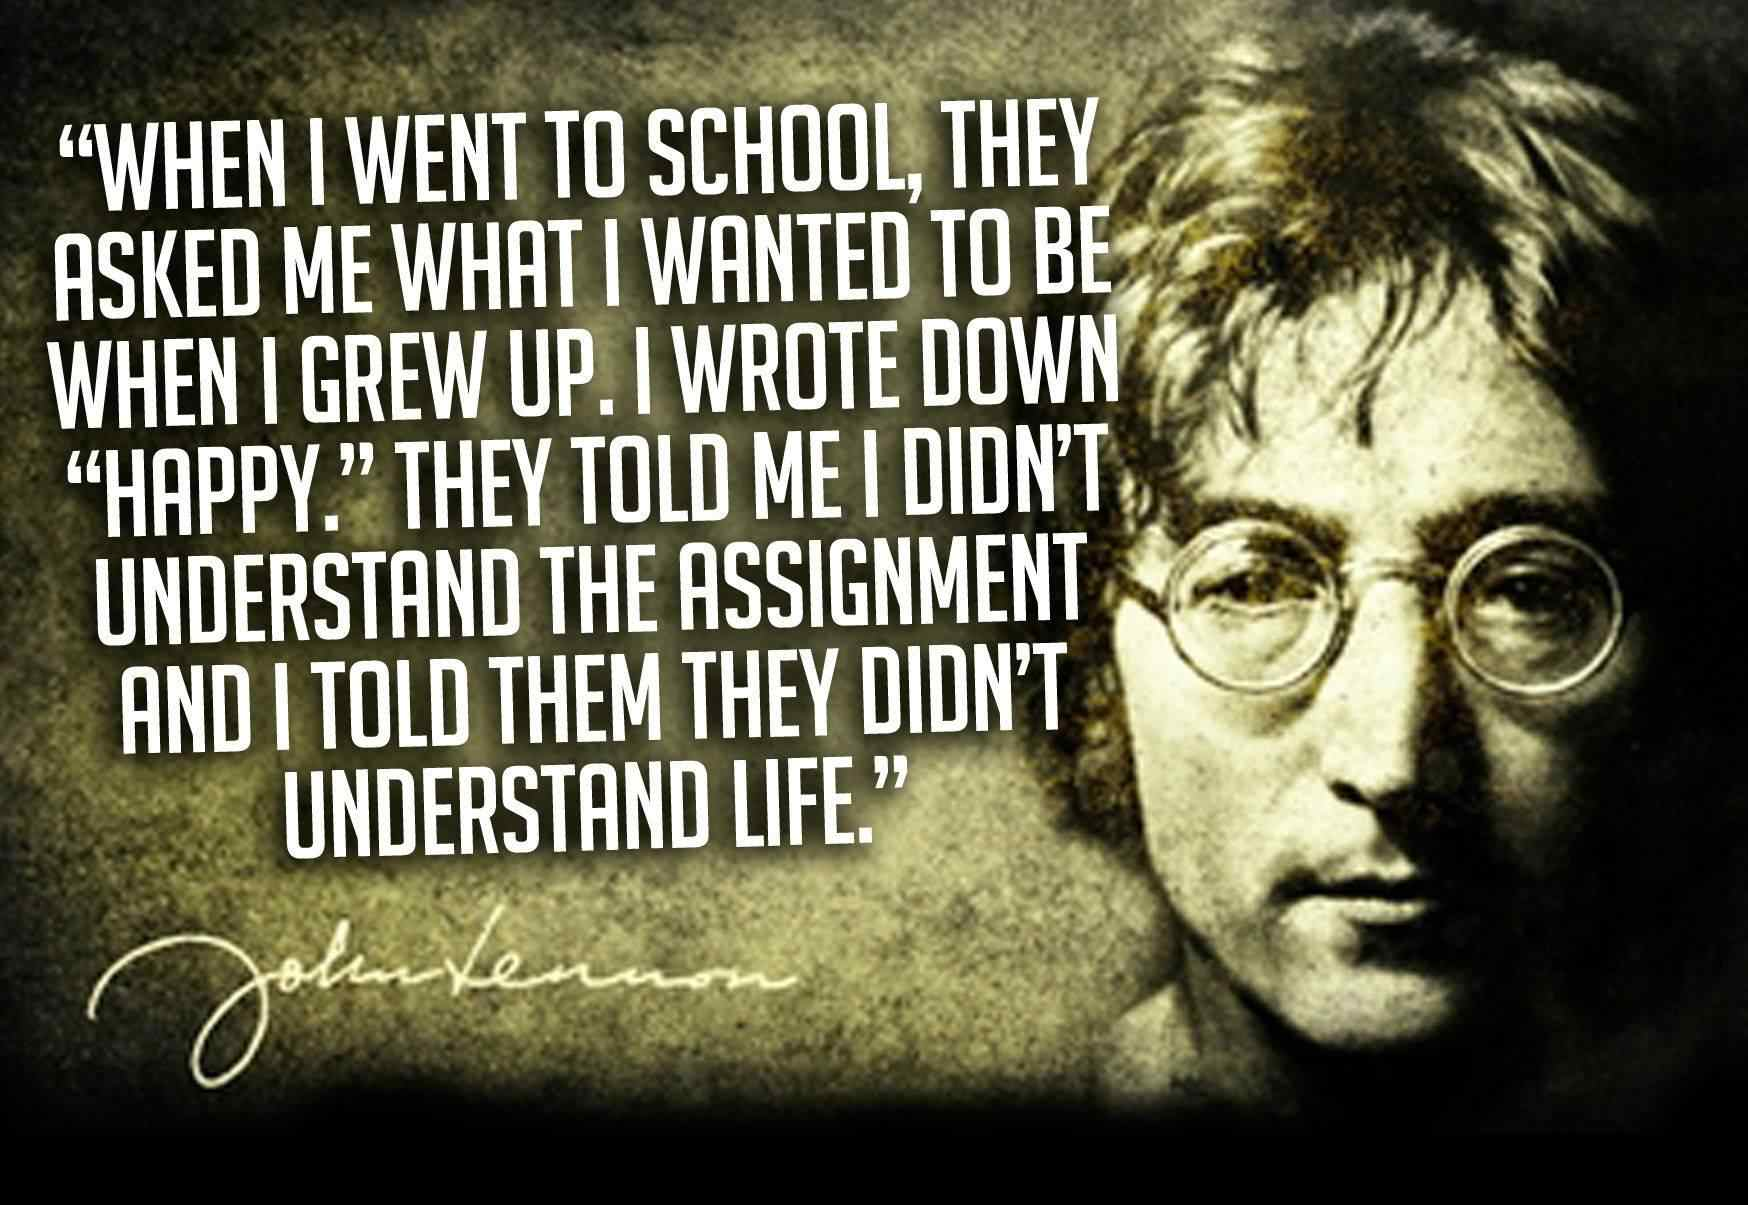 10 John Lennon Quotes Everyone Should Read